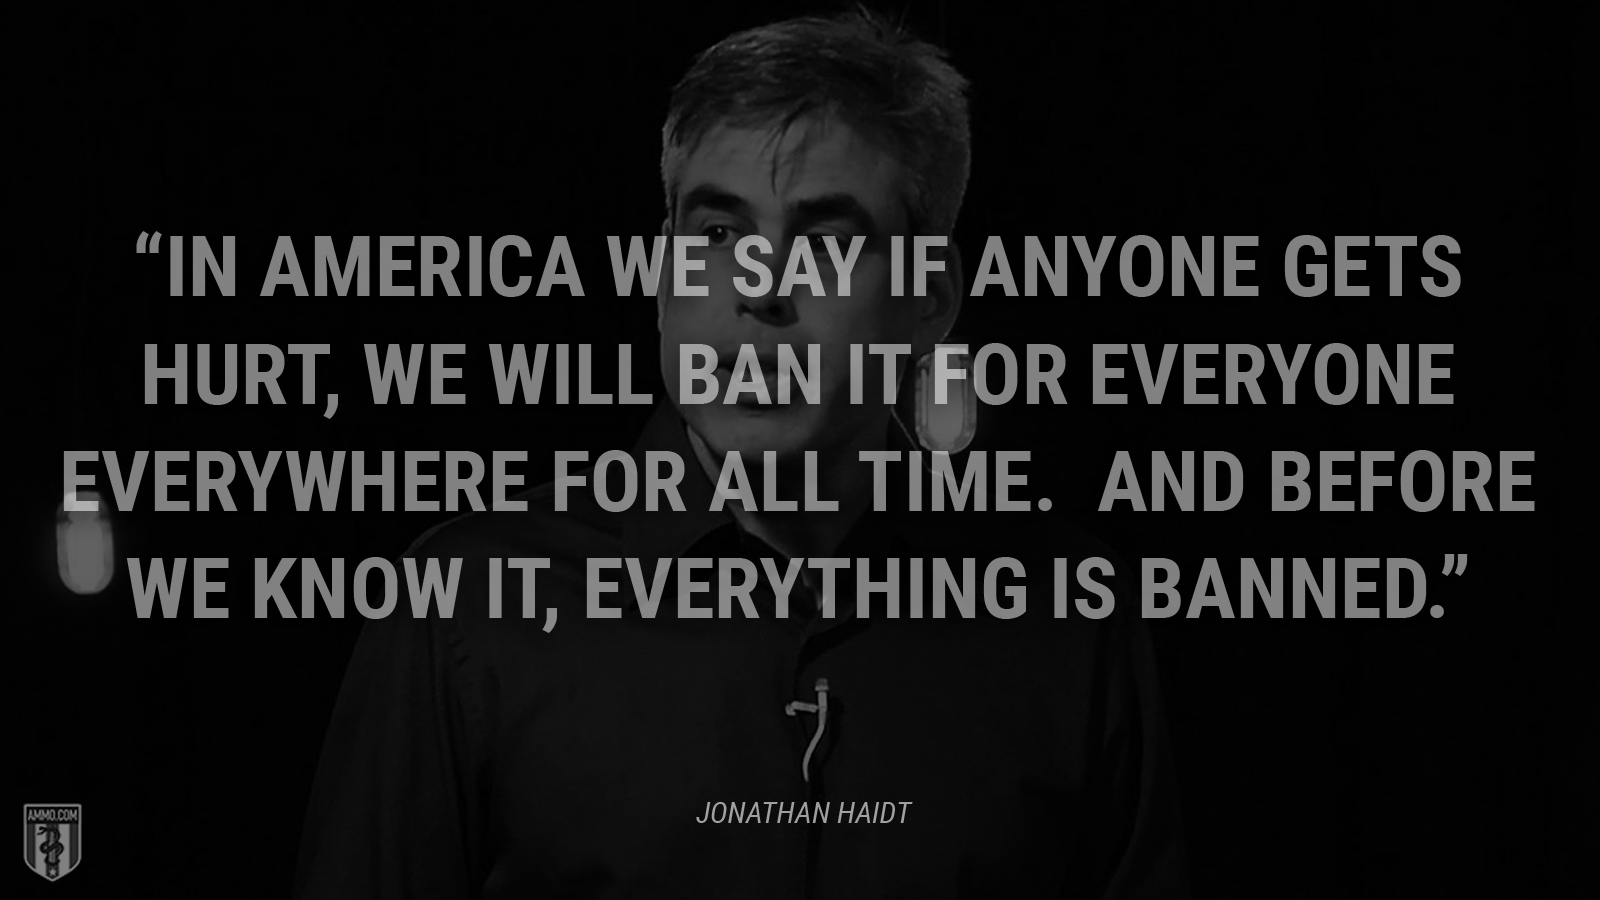 """In America we say if anyone gets hurt, we will ban it for everyone everywhere for all time.  And before we know it, everything is banned."" - Jonathan Haidt"